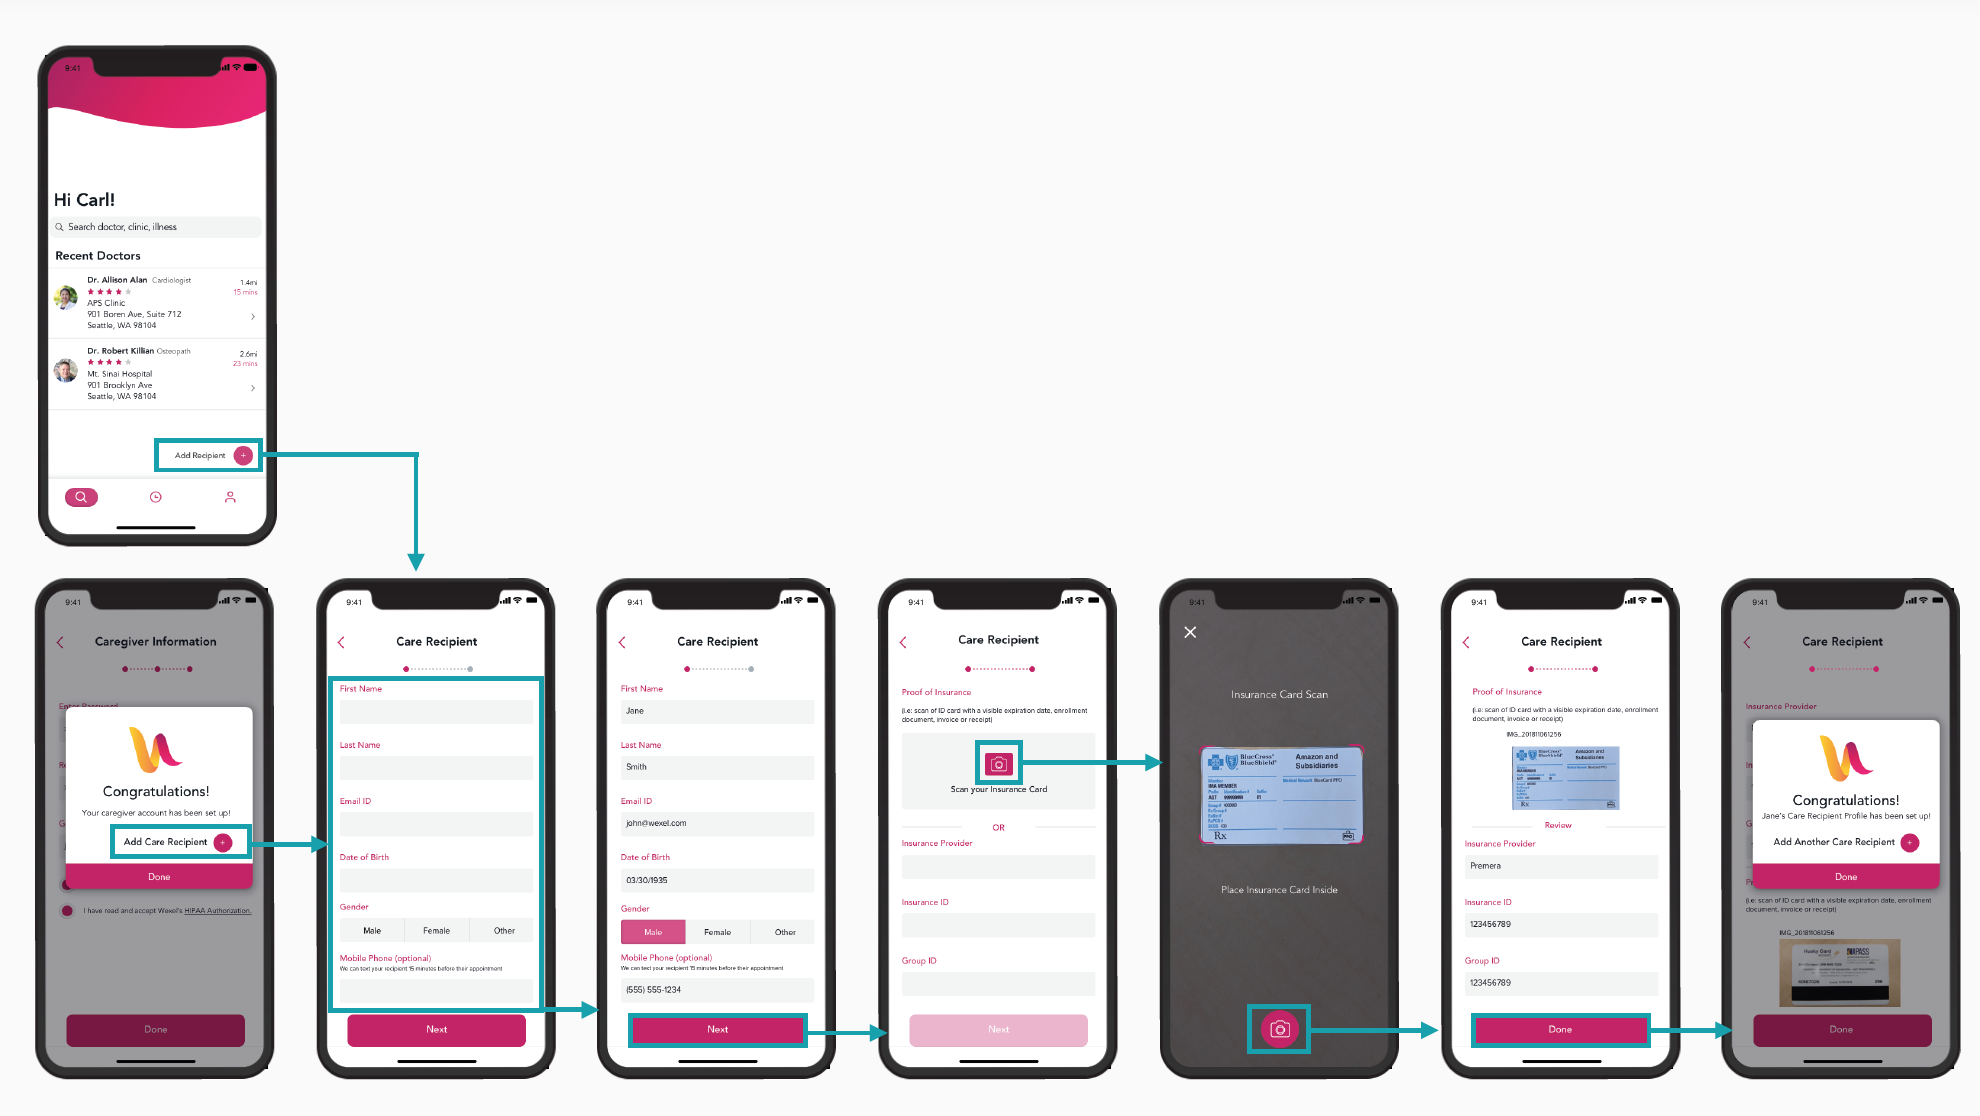 After the initial login, the user is taken through a series of steps to add a Care Recipient so they can start scheduling appointments for the person they are taking care of.